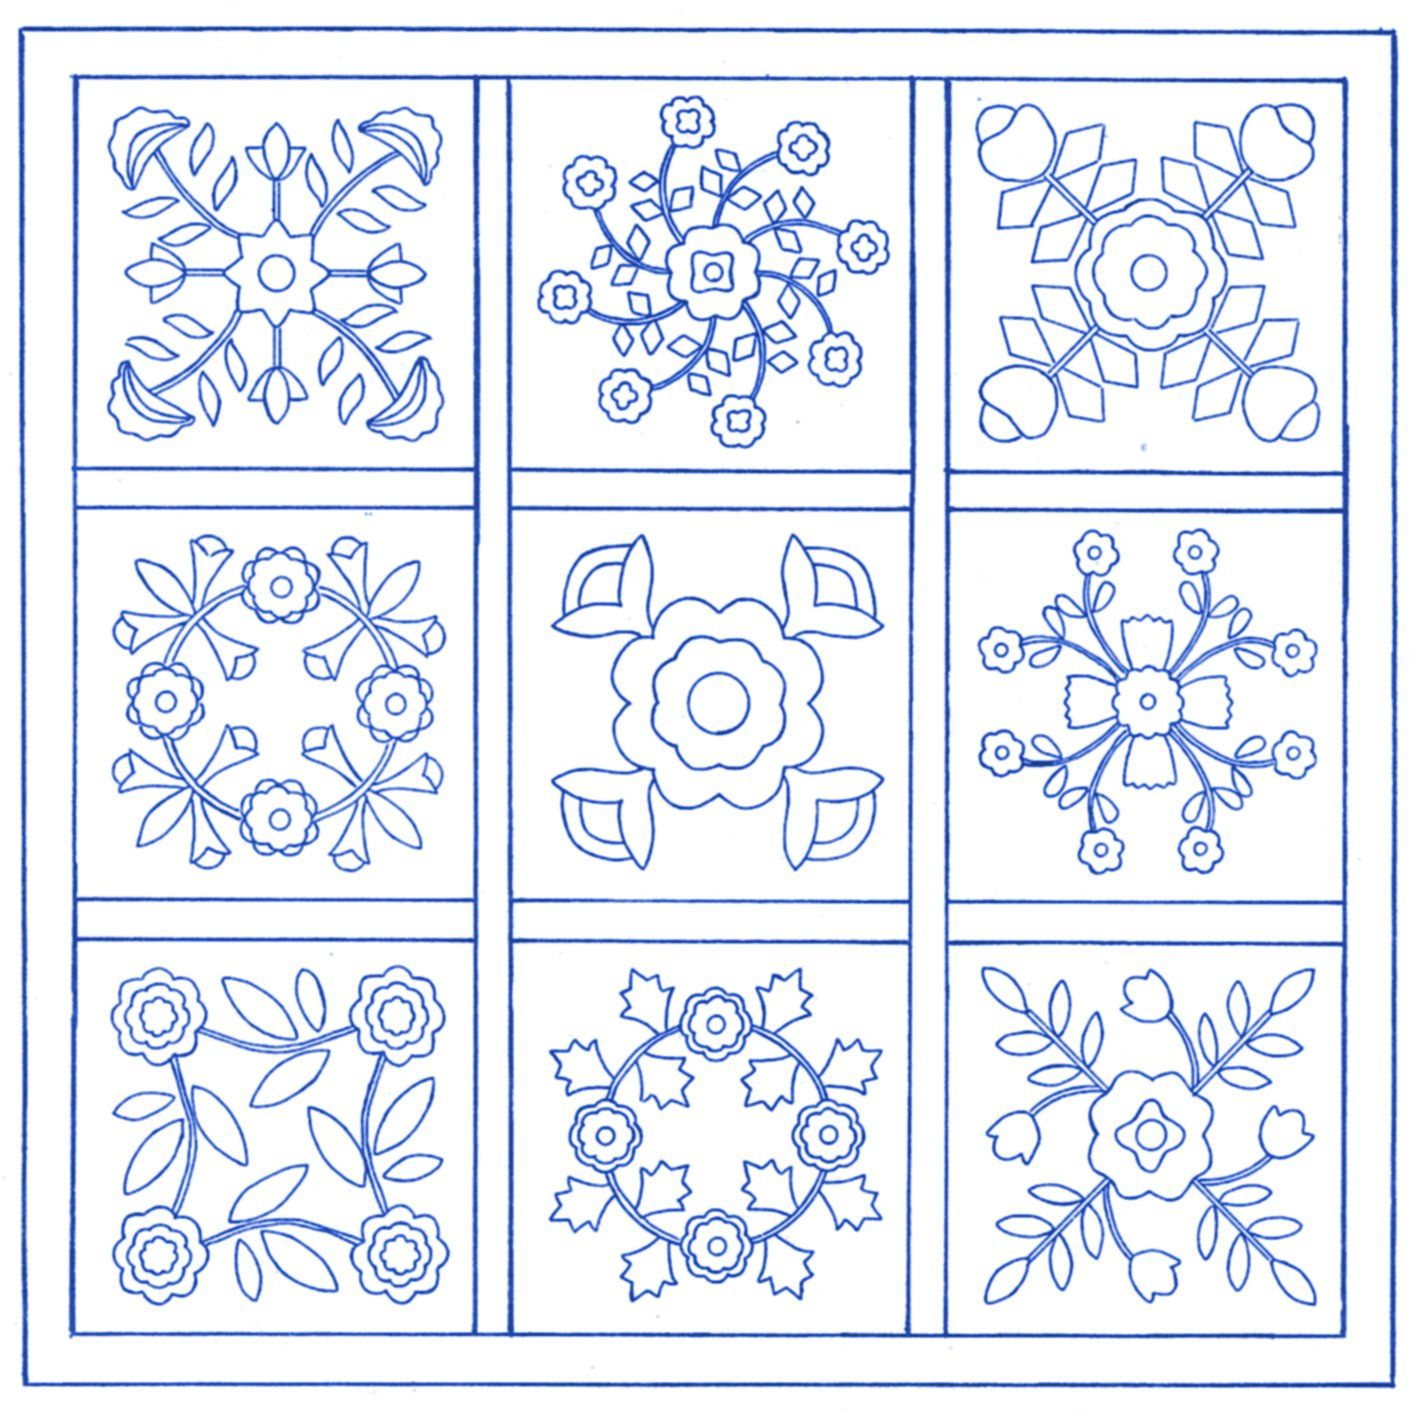 Free Applique Quilt Pattern Yahoo Image Search Results Applique Quilt Patterns Barn Quilt Patterns Applique Quilts